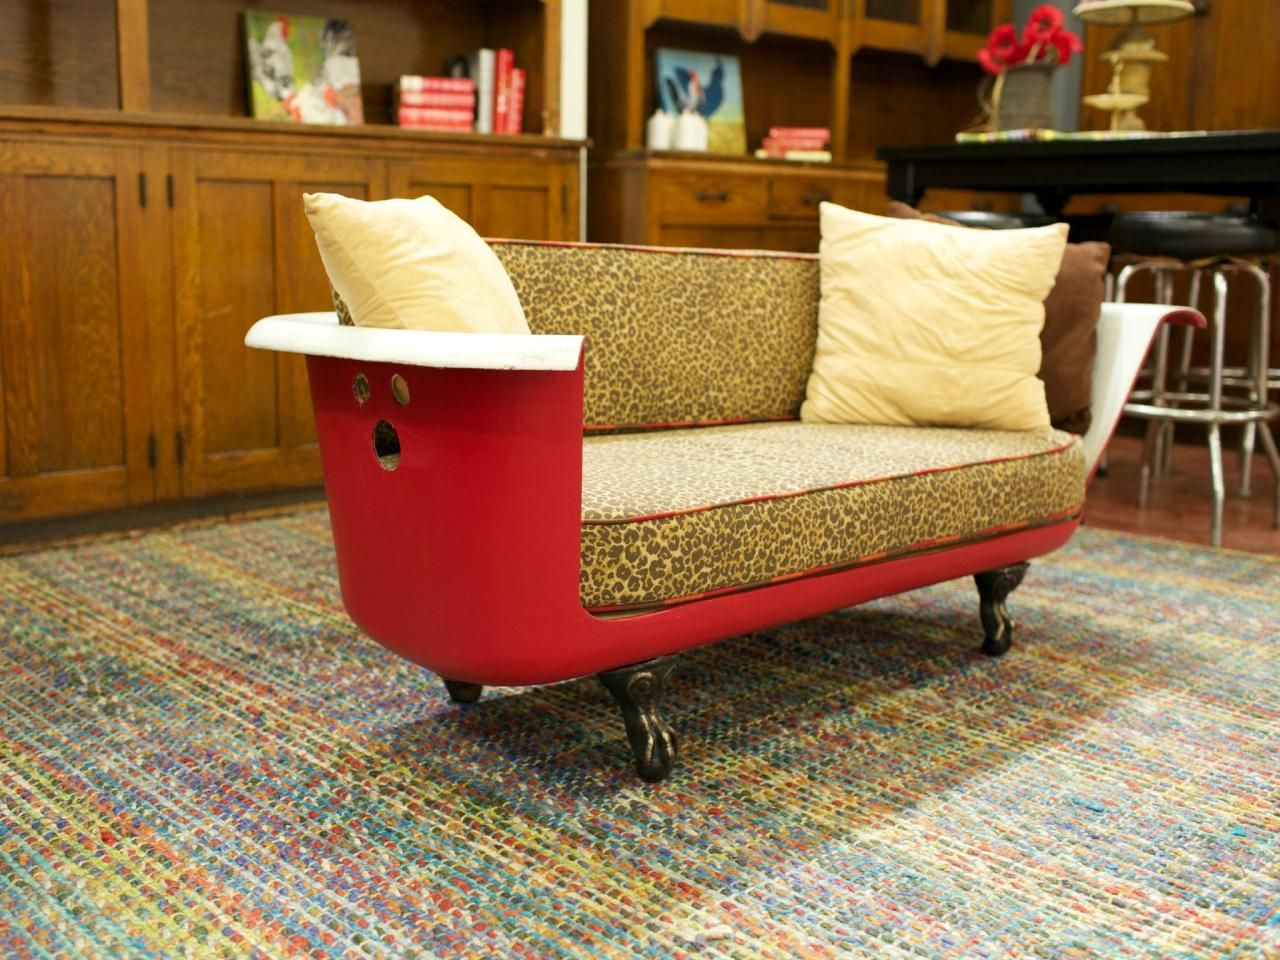 19 upcycling projects from salvage dawgs black dog for Sofa upcycling